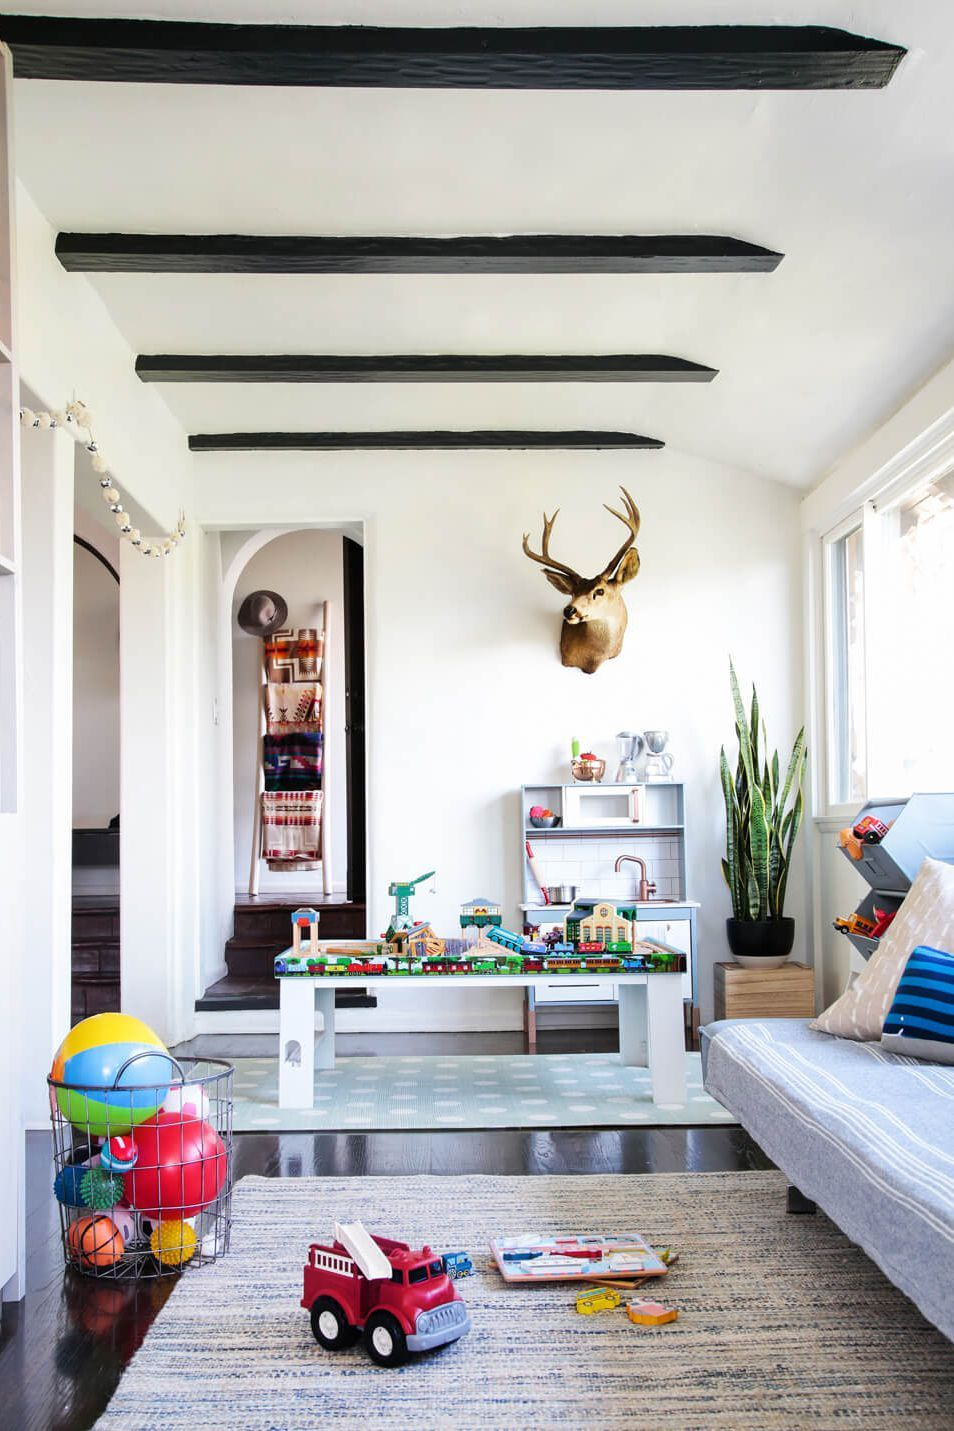 Brilliant Playroom Designs You Have to See | Kids Bedroom ...